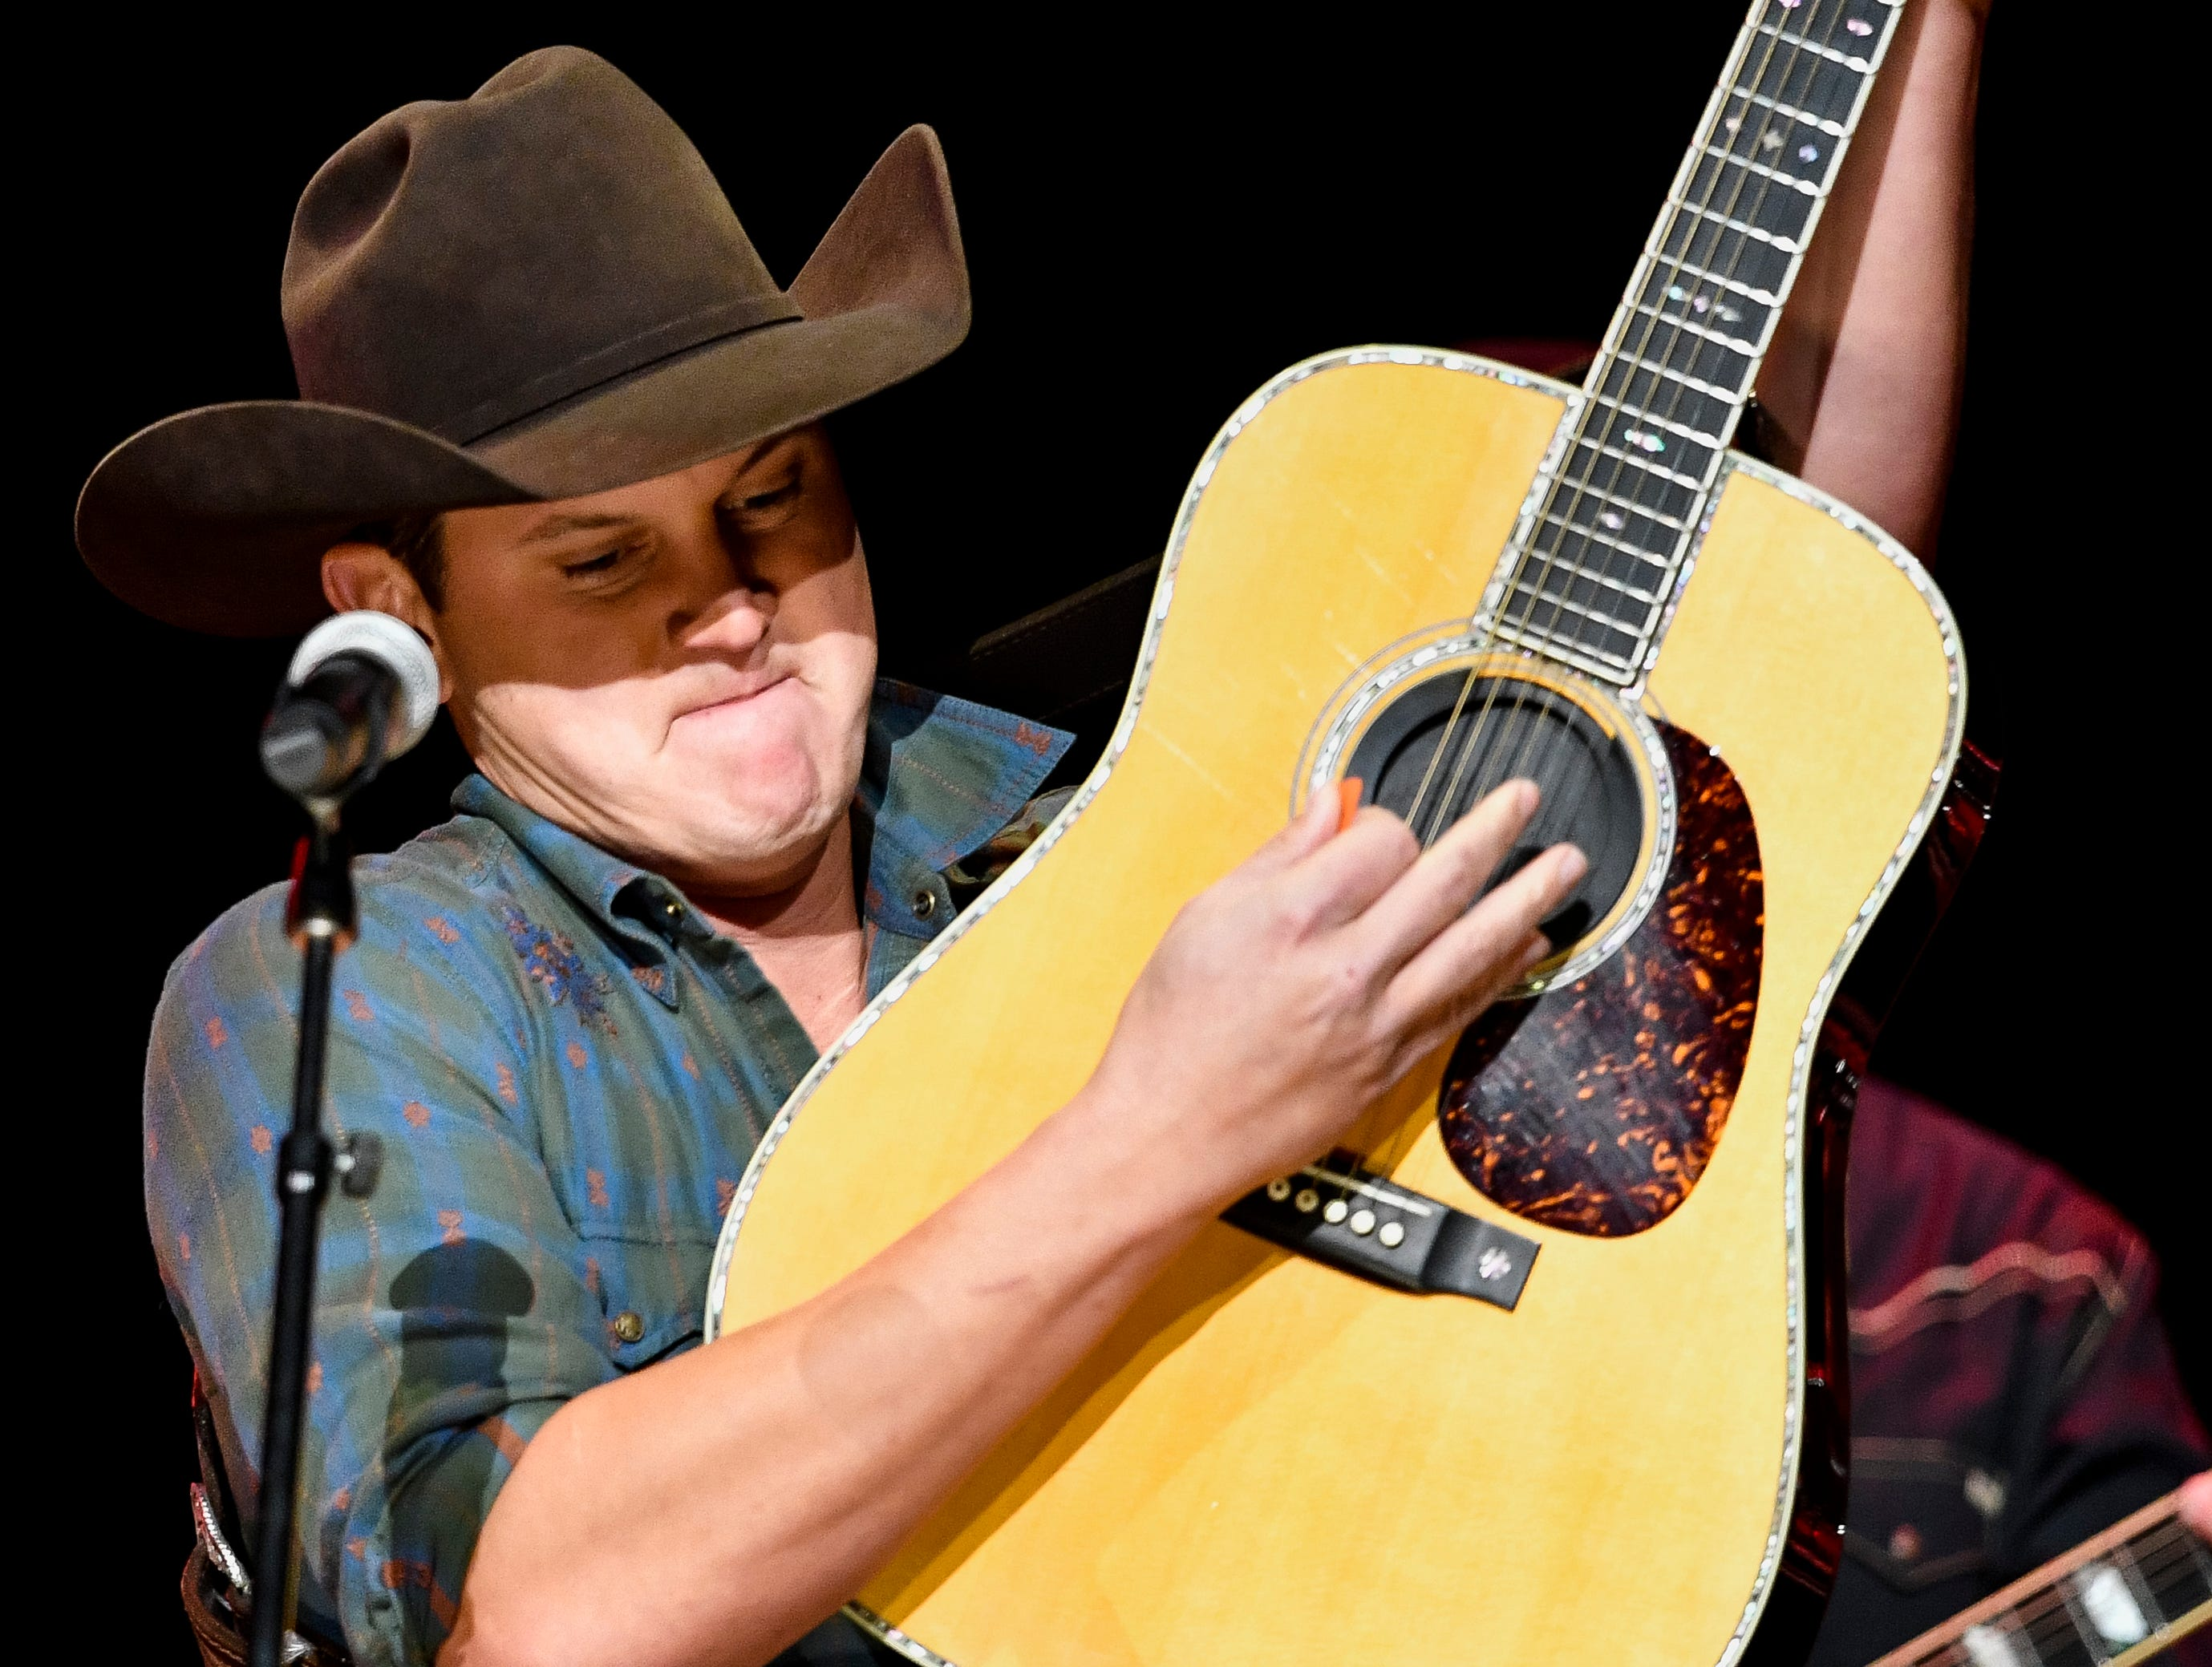 Jon Pardi performs during the C'Ya On The Flipside Benefit Concert at the Grand Ole Opry House in Nashville, Tenn., Wednesday, Jan. 9, 2019.